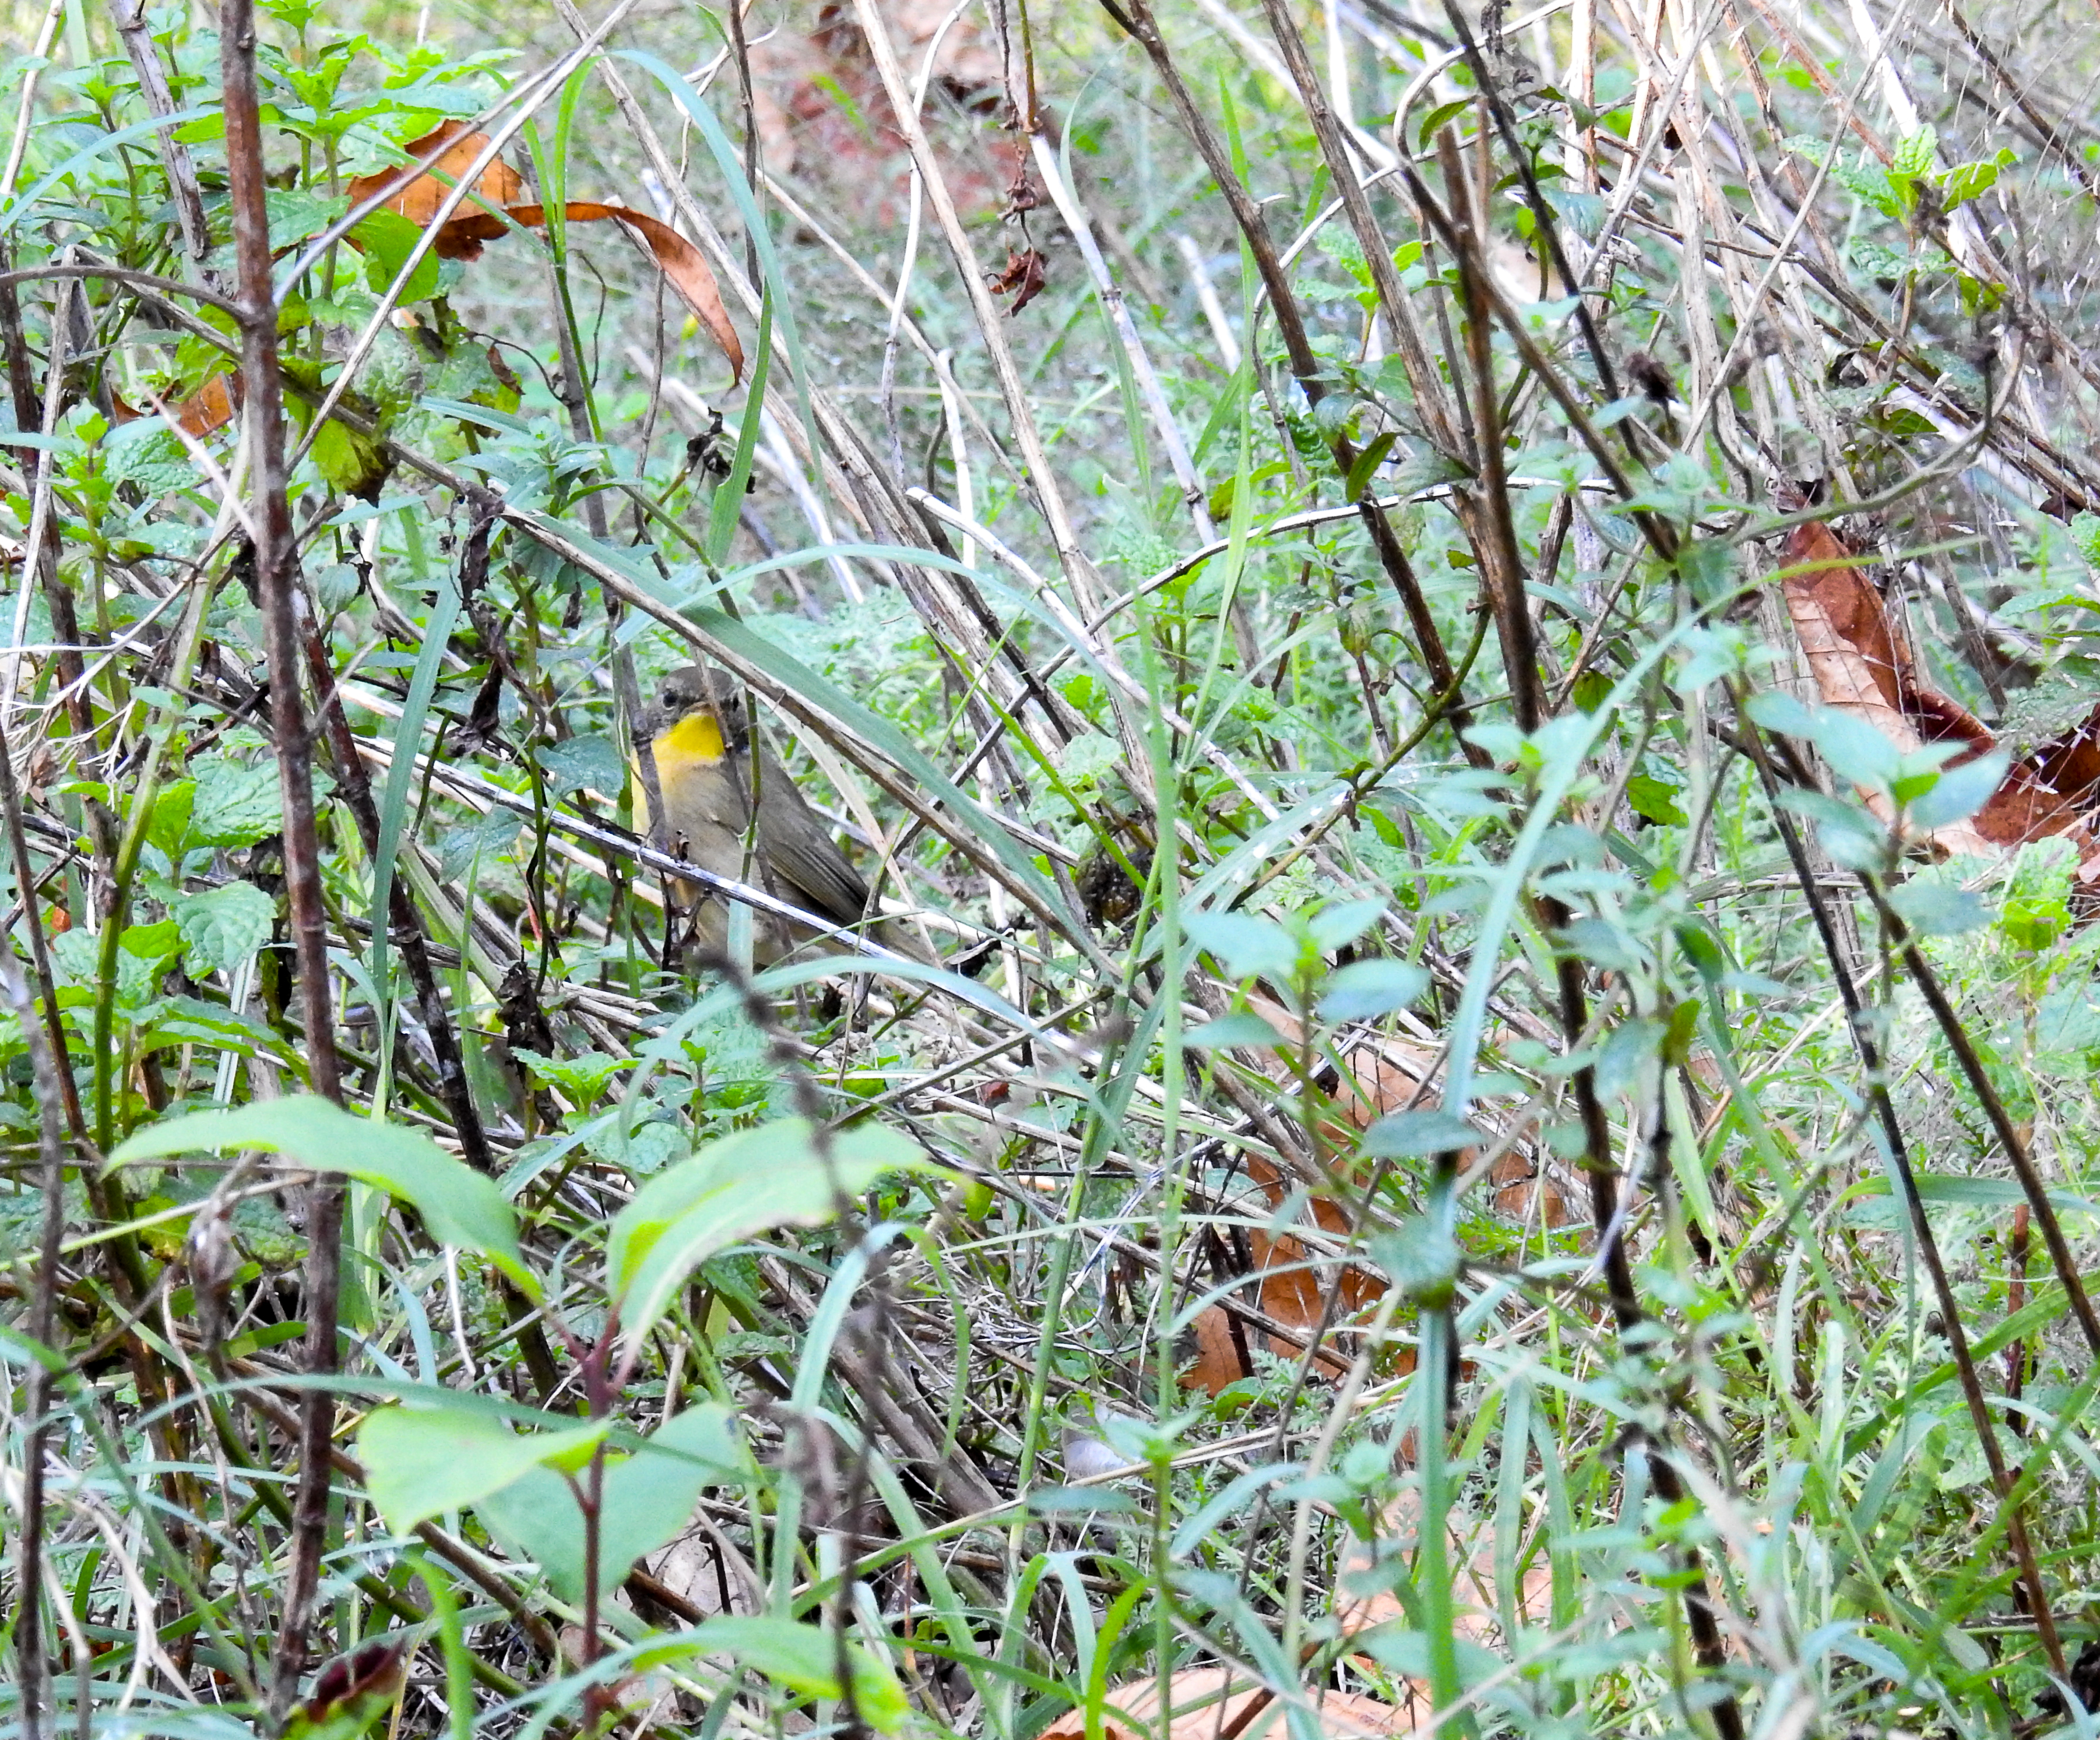 Juvenile Male Common Yellowthroat in a weedy patch